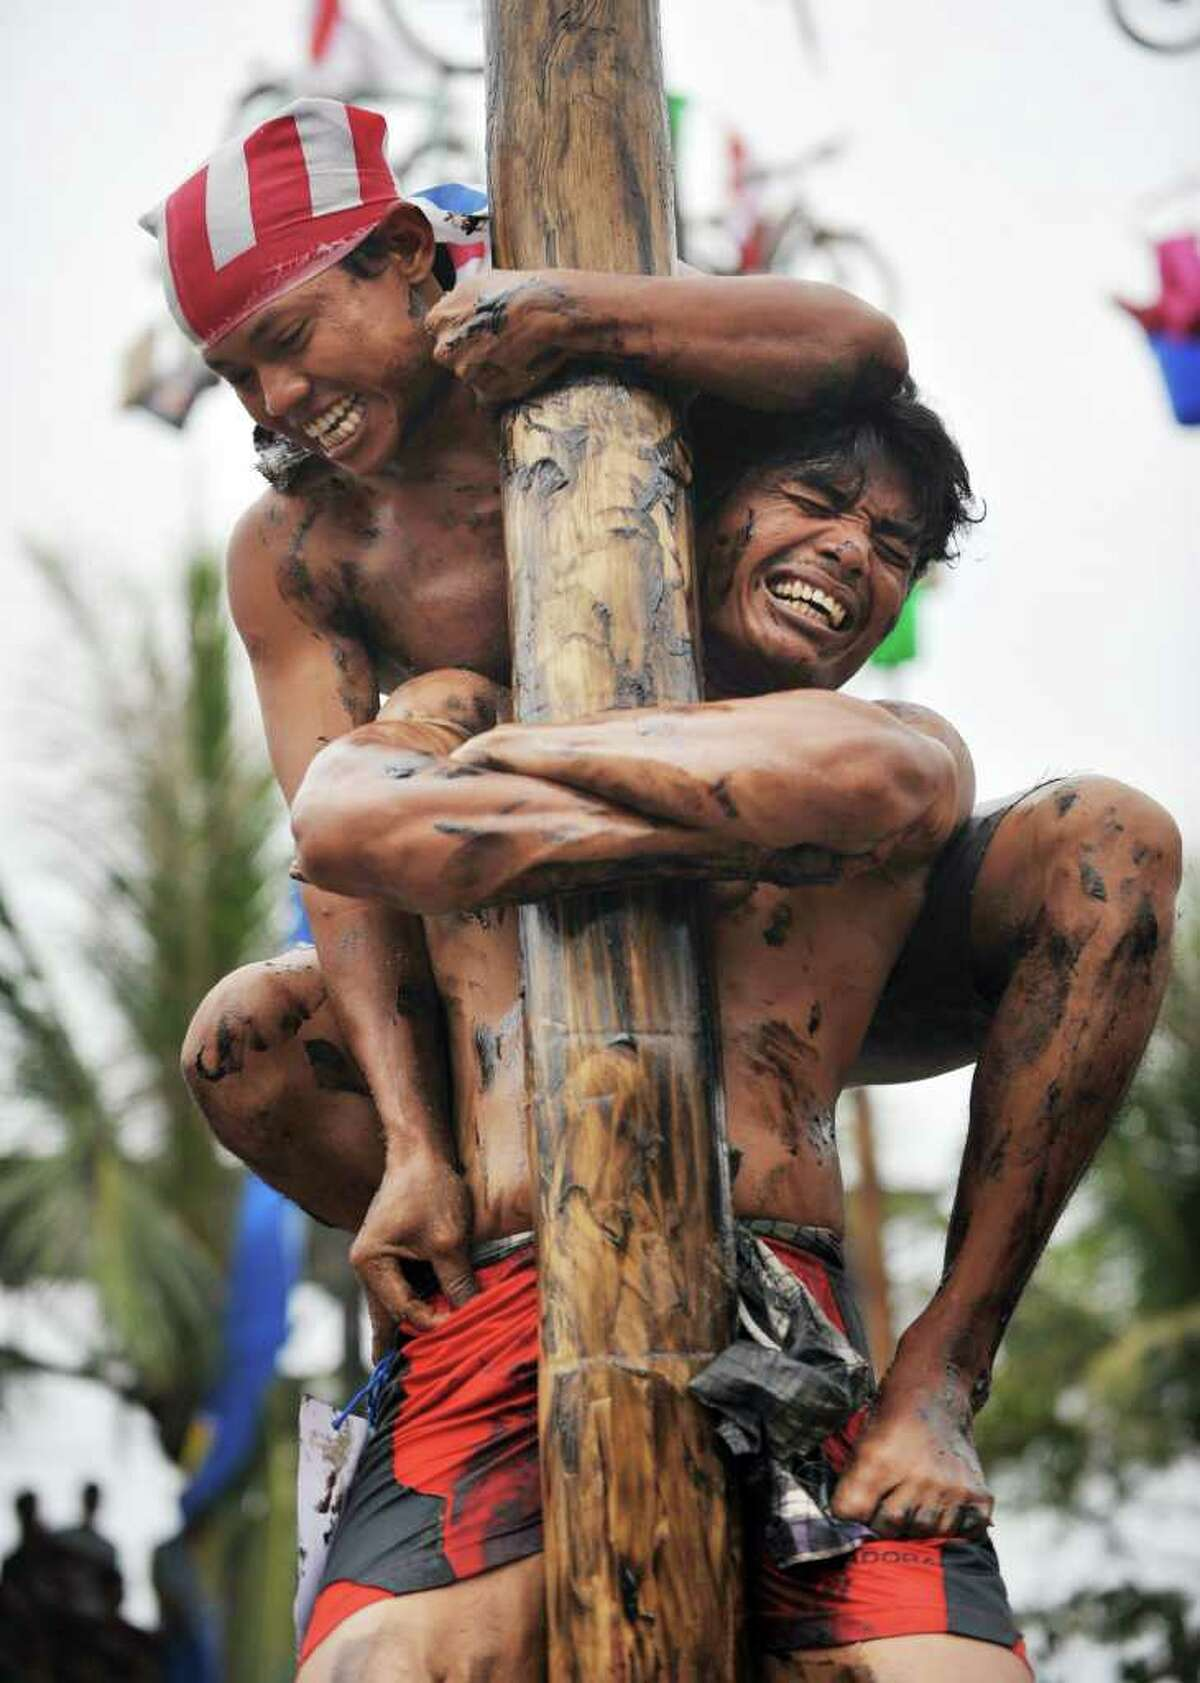 A man holds his friend as they attempt to climb a greased and slippery pole (with prizes attached) to celebrate the Indonesian Independence Day in Jakarta.